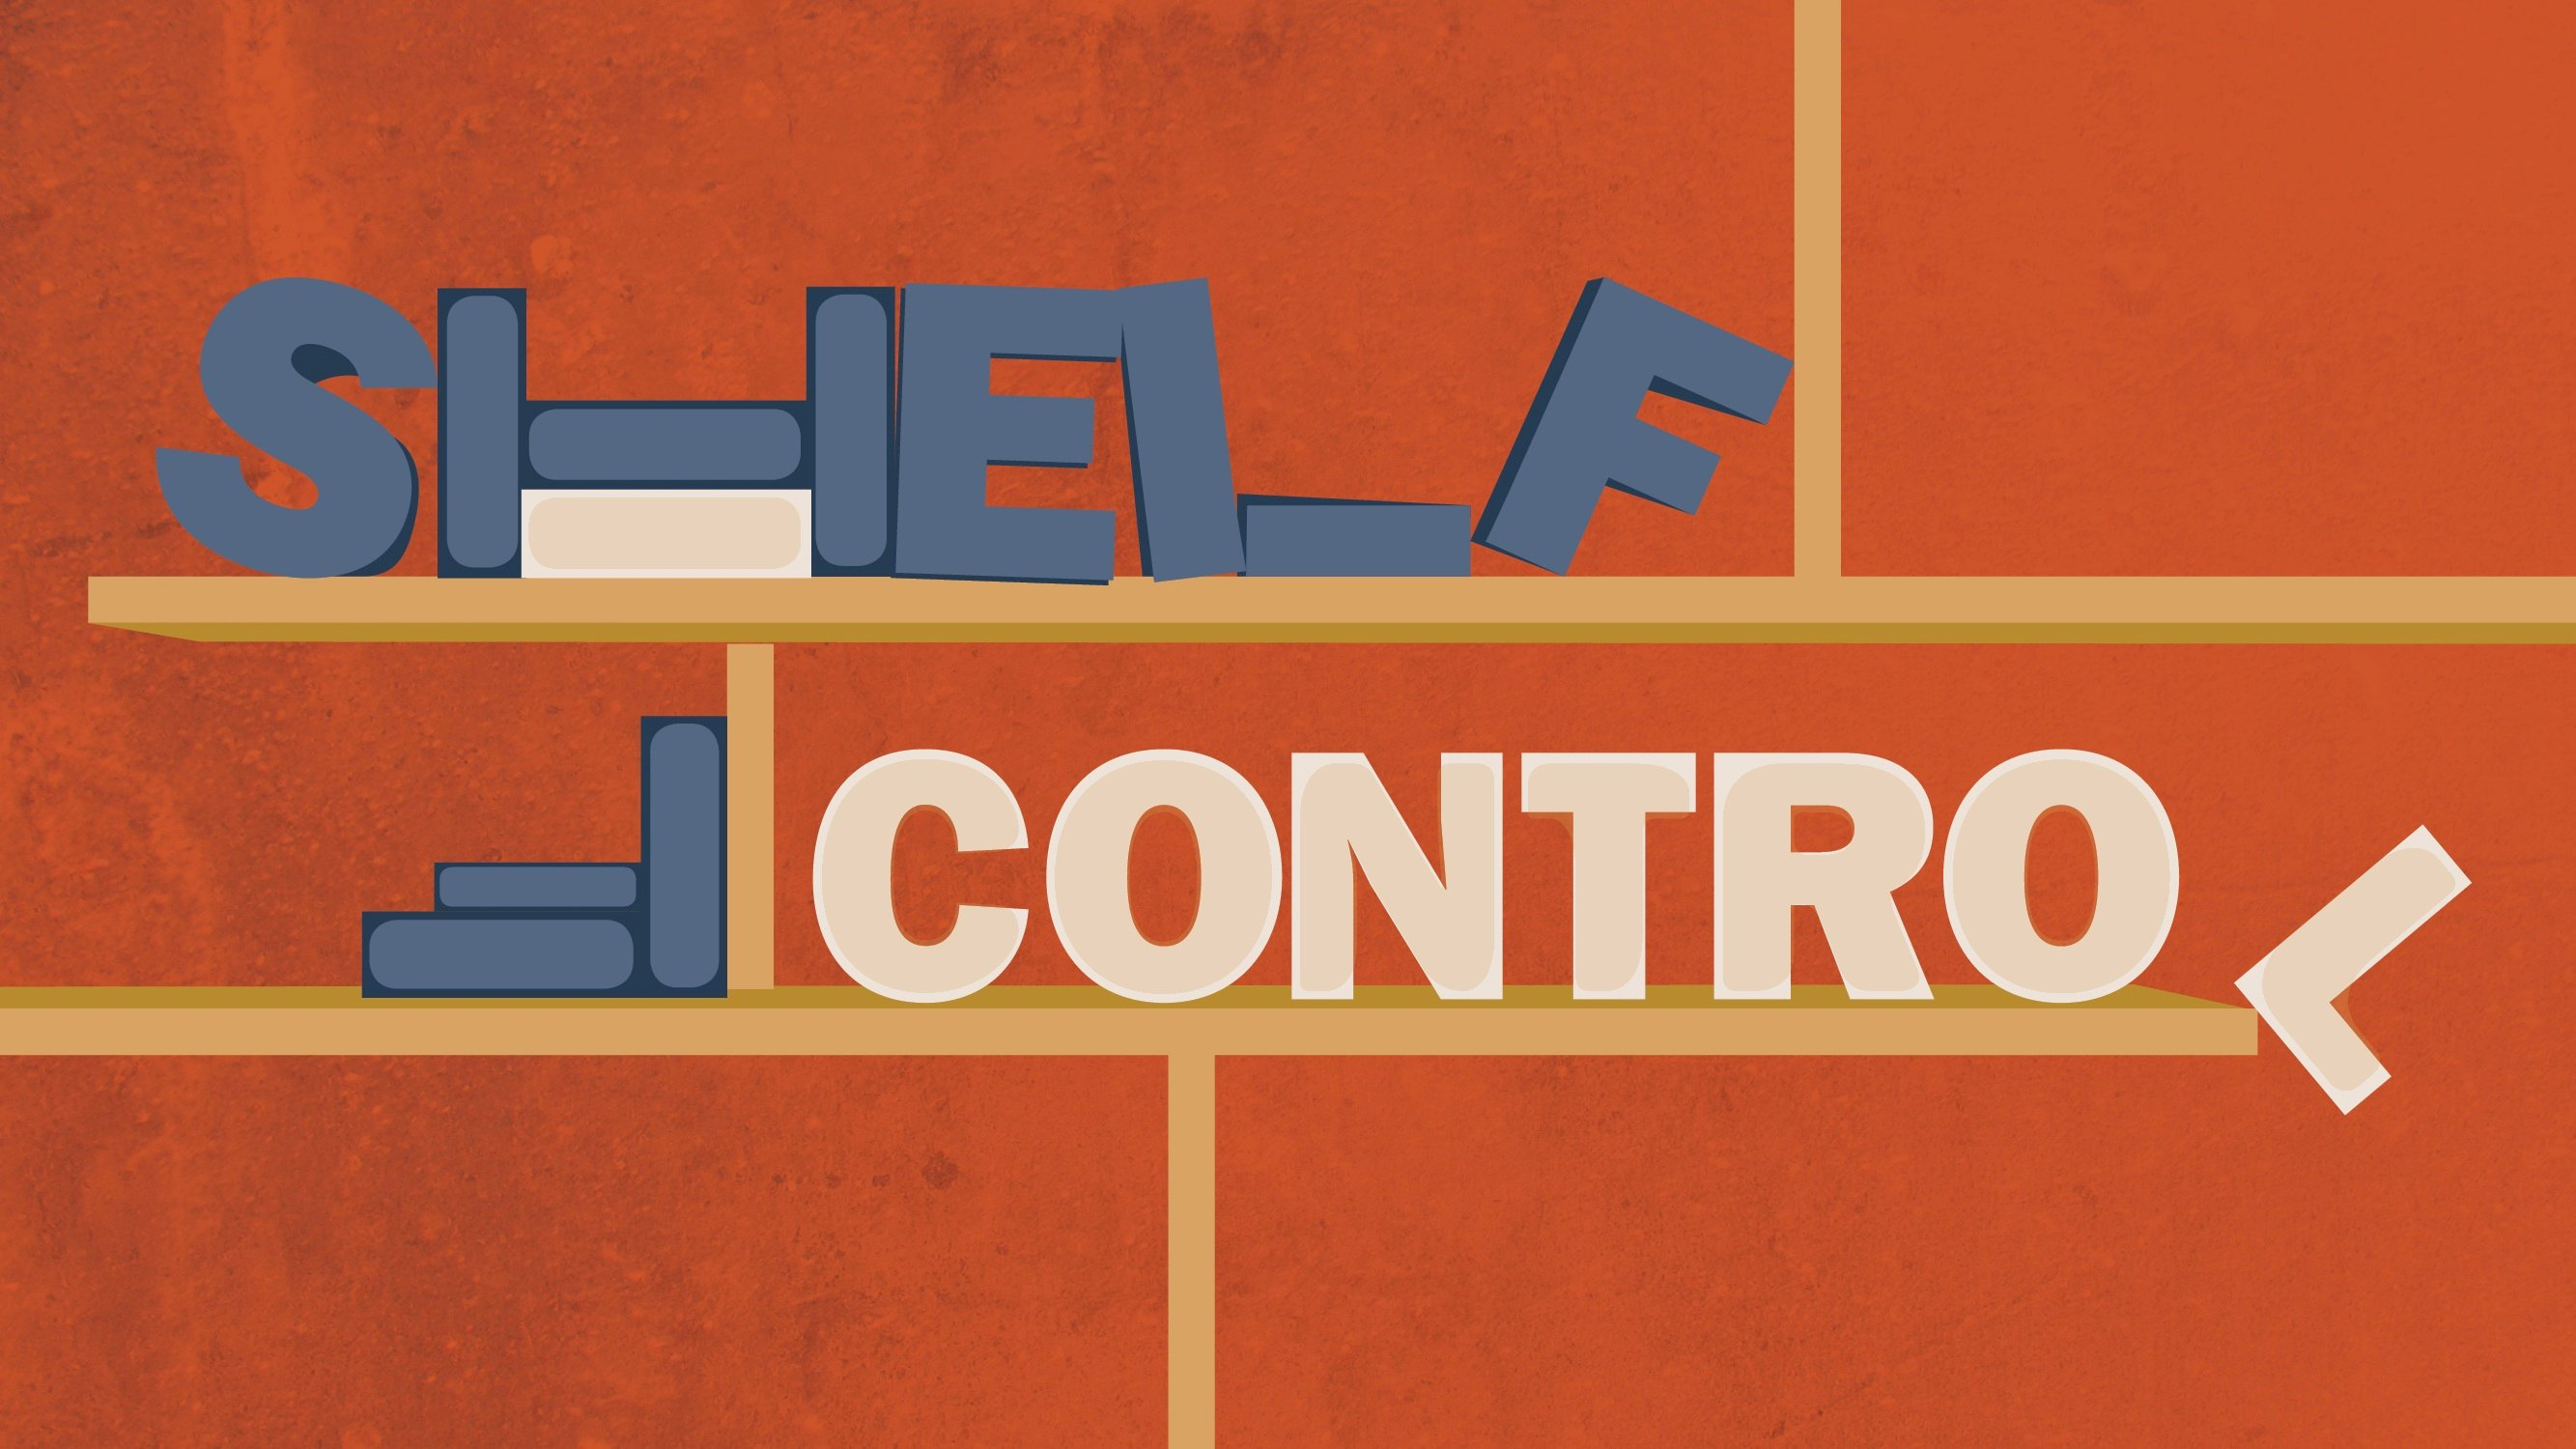 Shelf Control: Download Wired And Other Condé Nast E-Zines For Free This Cyber Monday